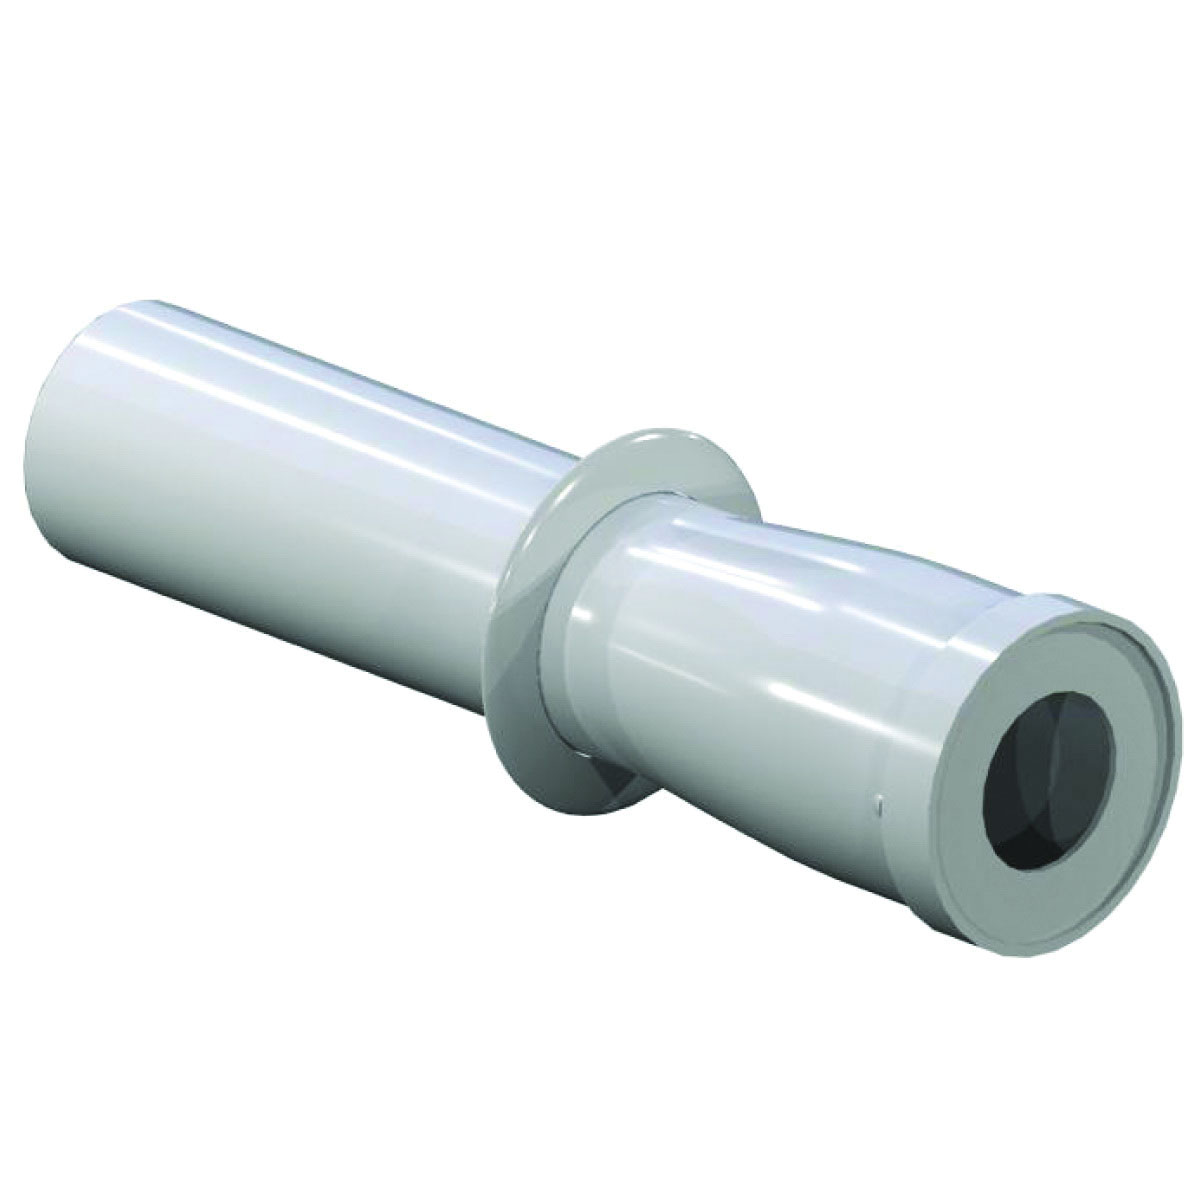 Liberty Pumps® K001184 Extension Pipe With Bell Seal, 15-3/4 x 4 in, Import